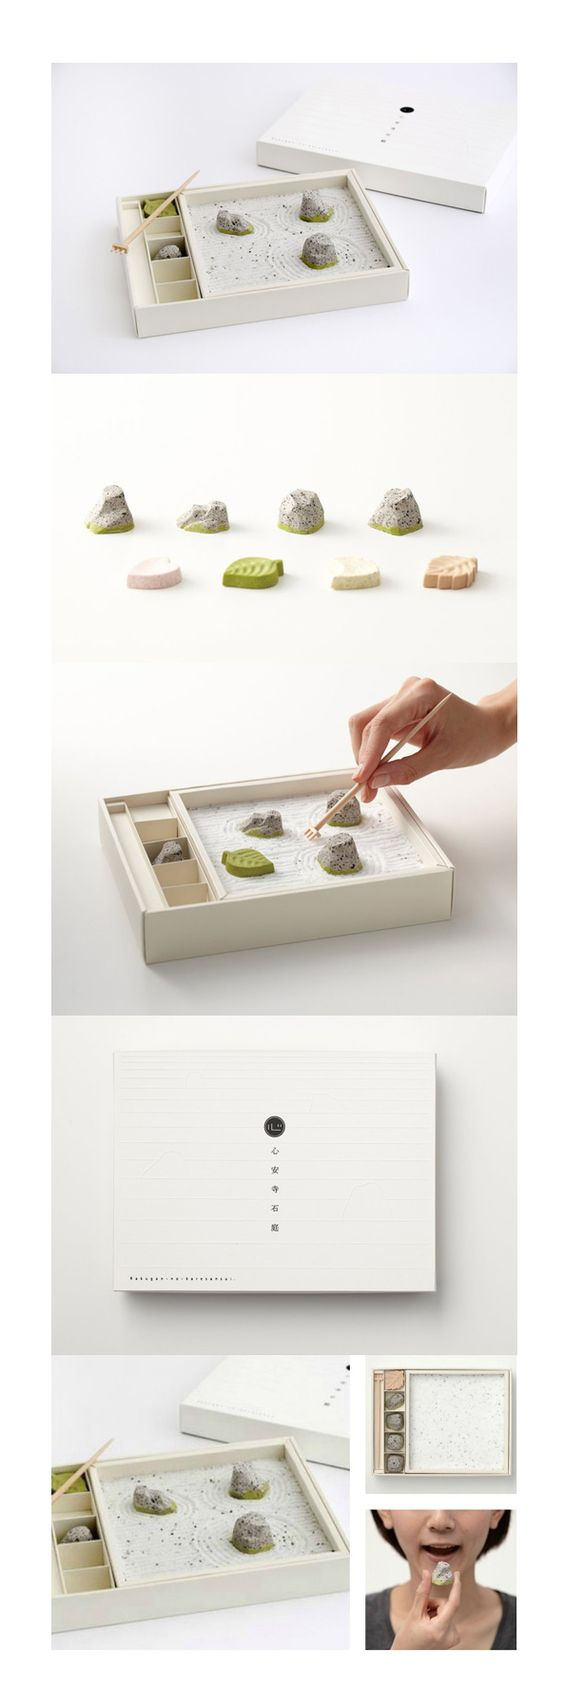 Edible zen garden with black sesame rocks and sugar sand. Here's the extended pin on this beautiful Zen packaging design. PD